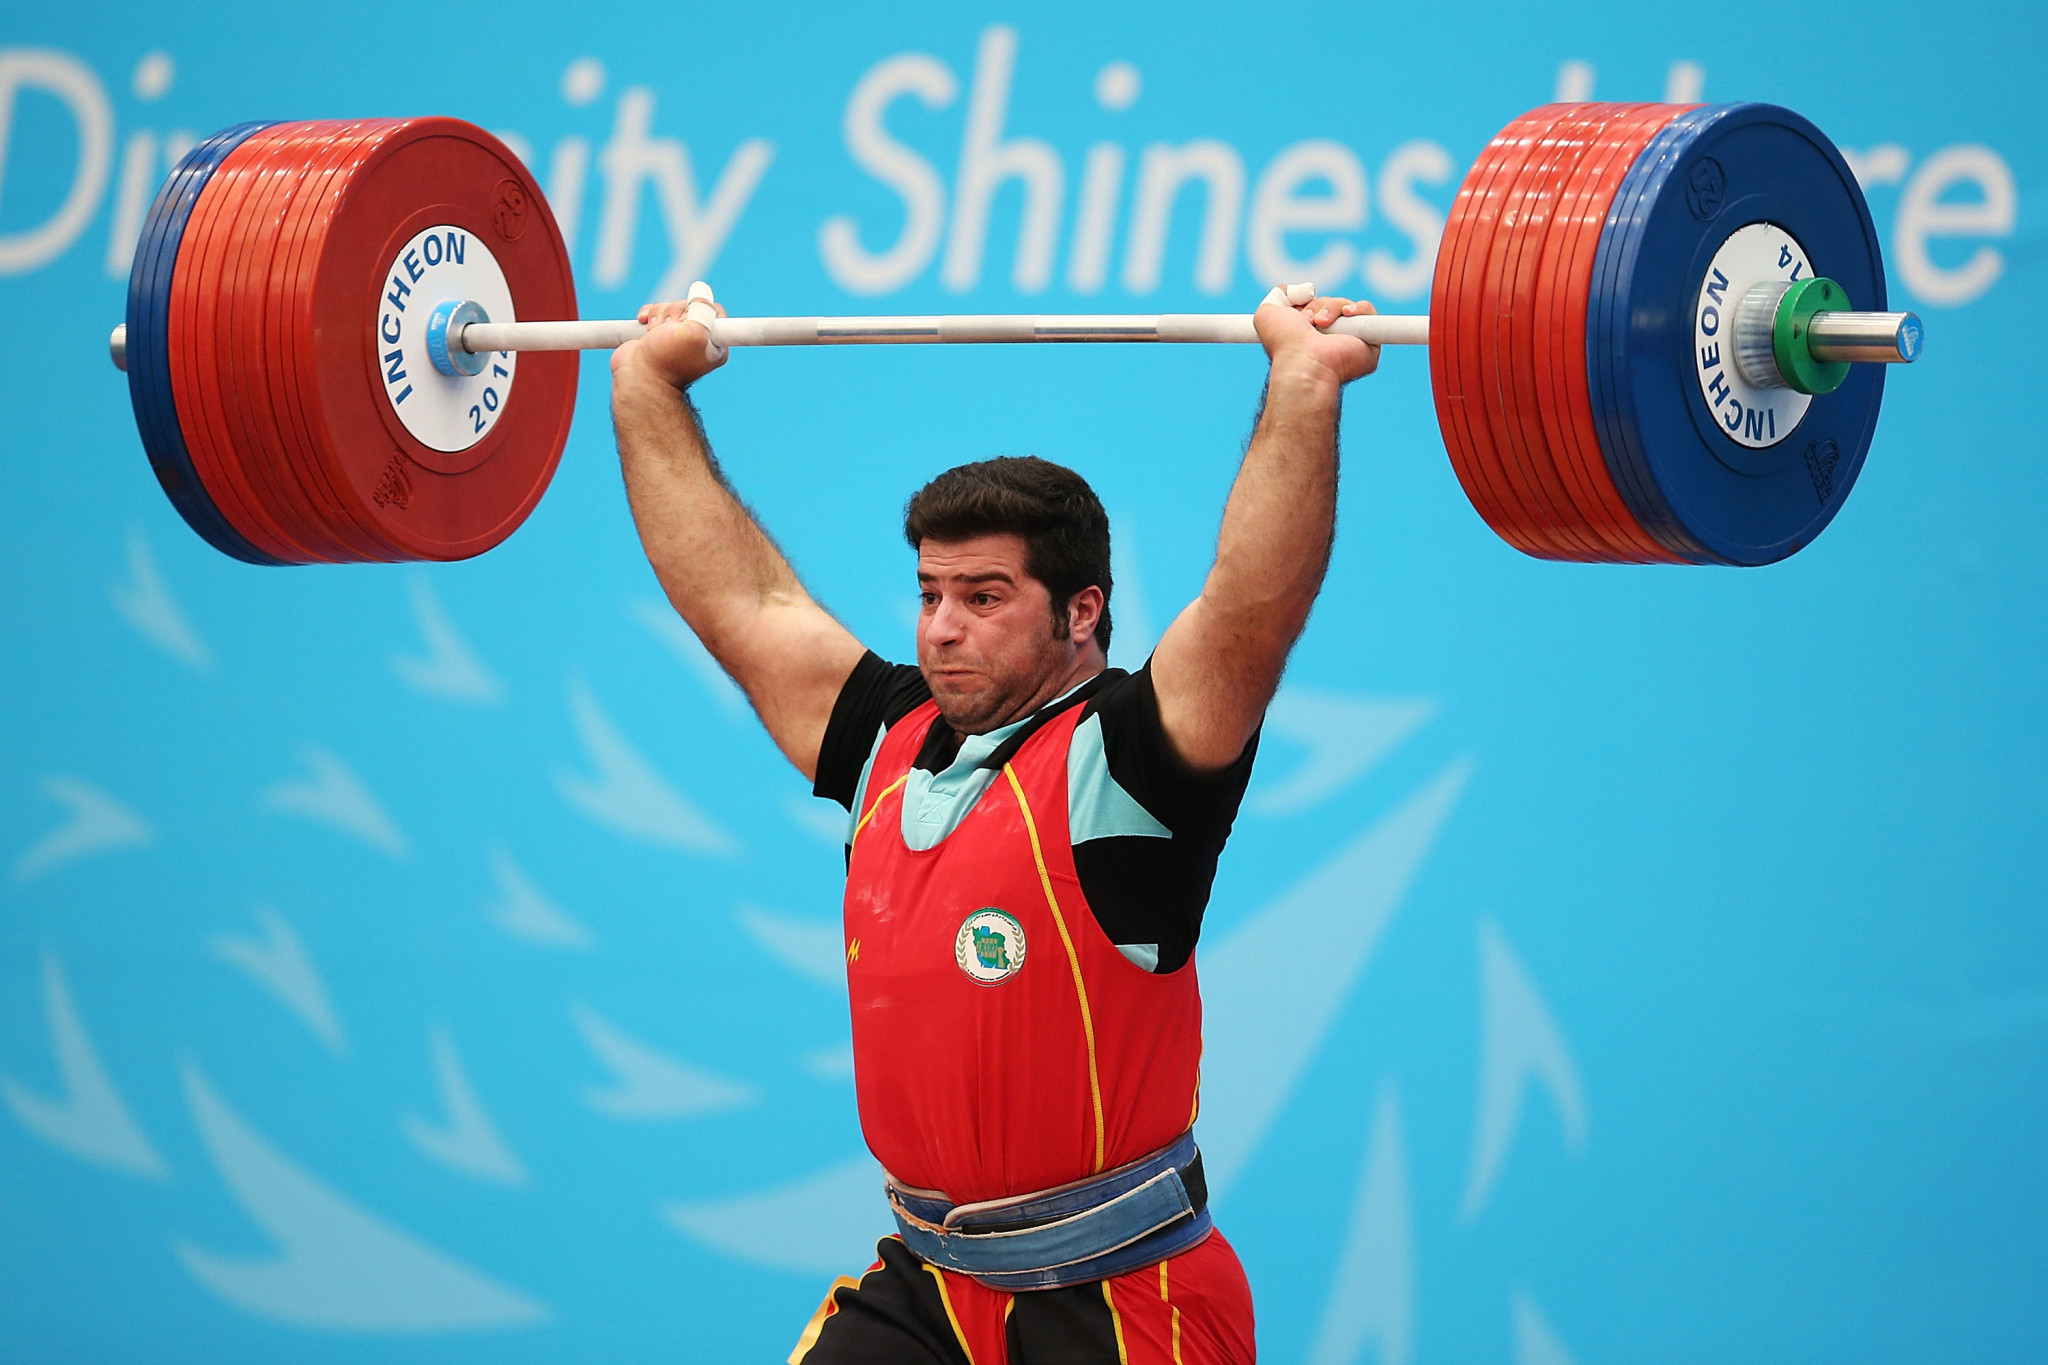 Navab Nassirshalal of Iran could win a retrospective Olympic gold medal ©Getty Images